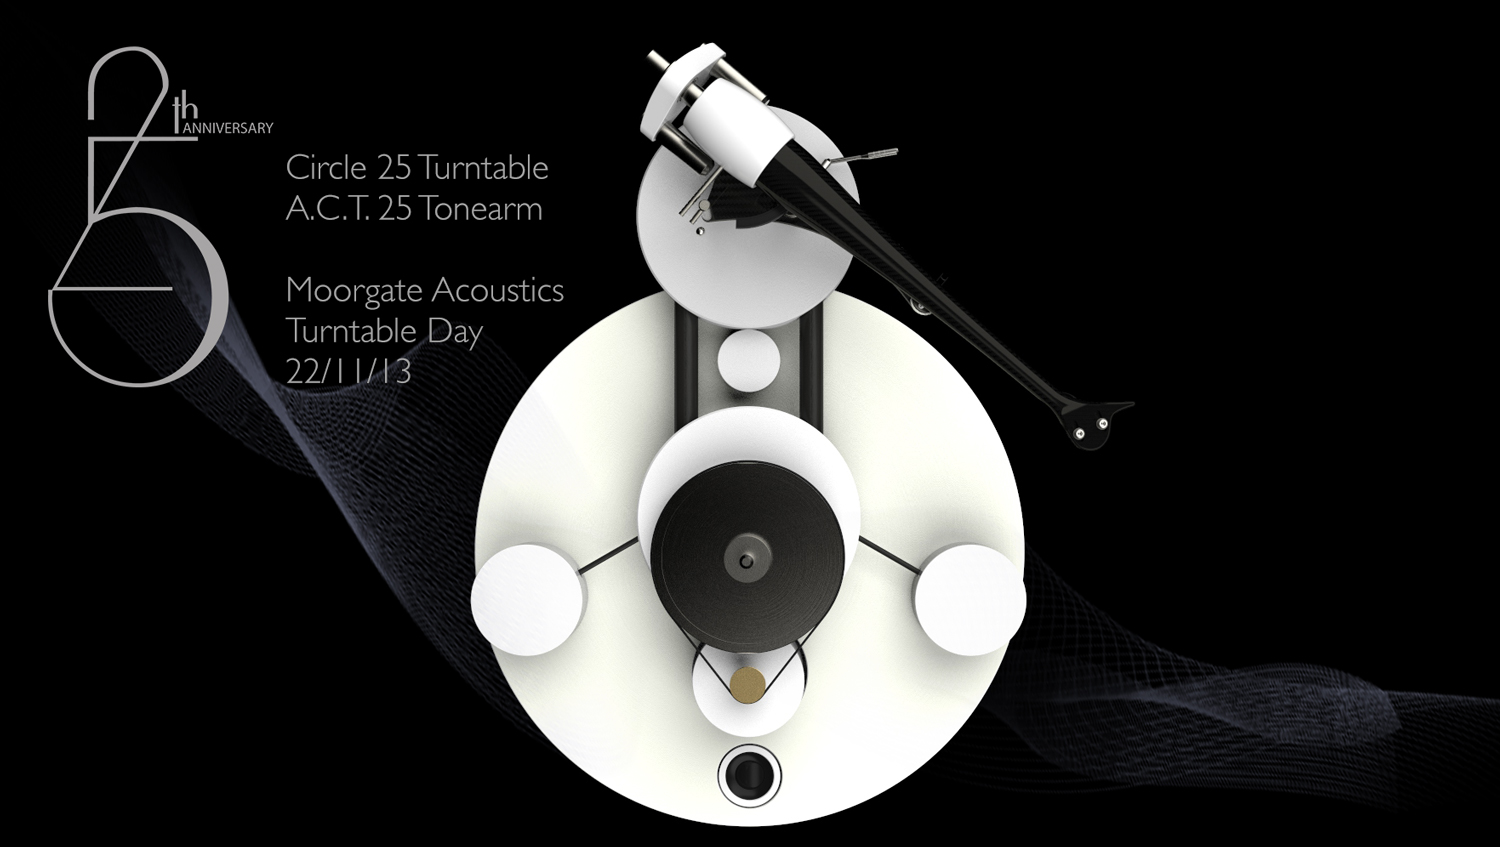 Wilson Benesch - Circle 25 Anniversary Turntable - Analogue Collection - Moorgate Acoustics - Turntable Day - Sheffield